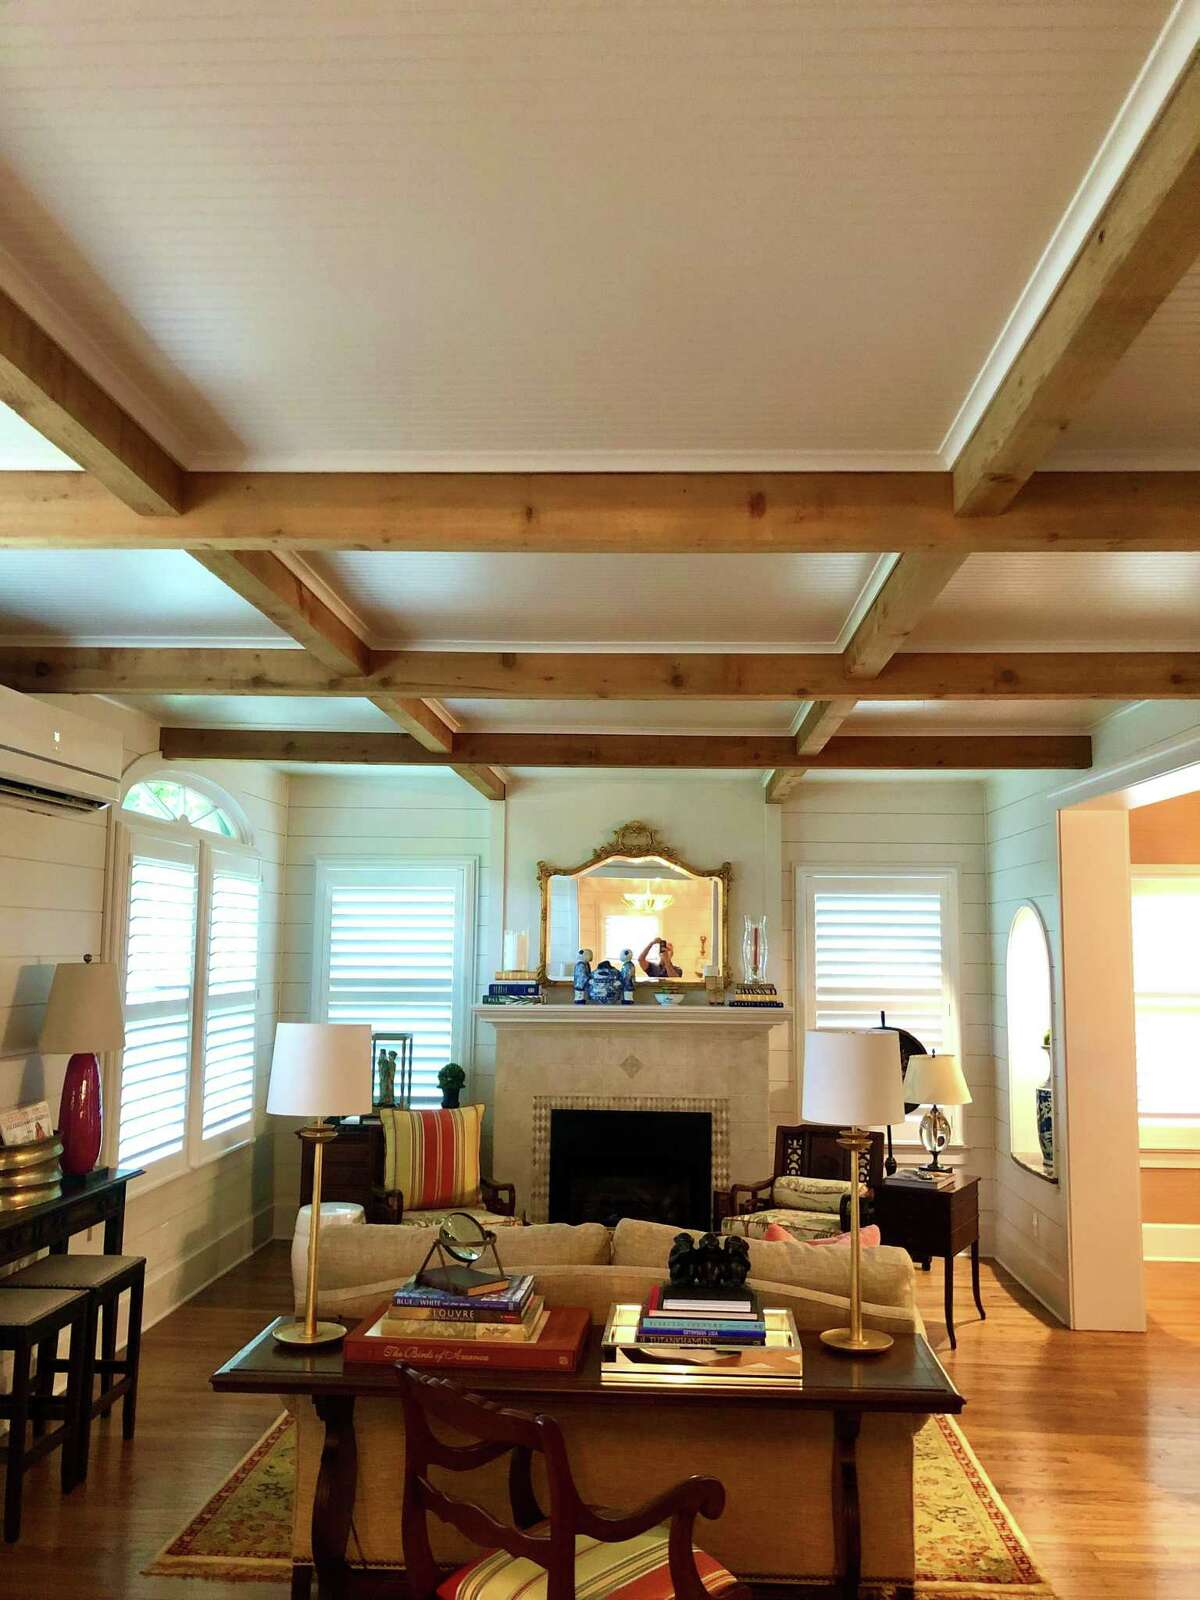 The eye-catching coffered ceilings in Helen and Mitch Seal's Alta Vista home were created with decorative cedar beams and bead board paneling of the kind typically used as wainscoting.